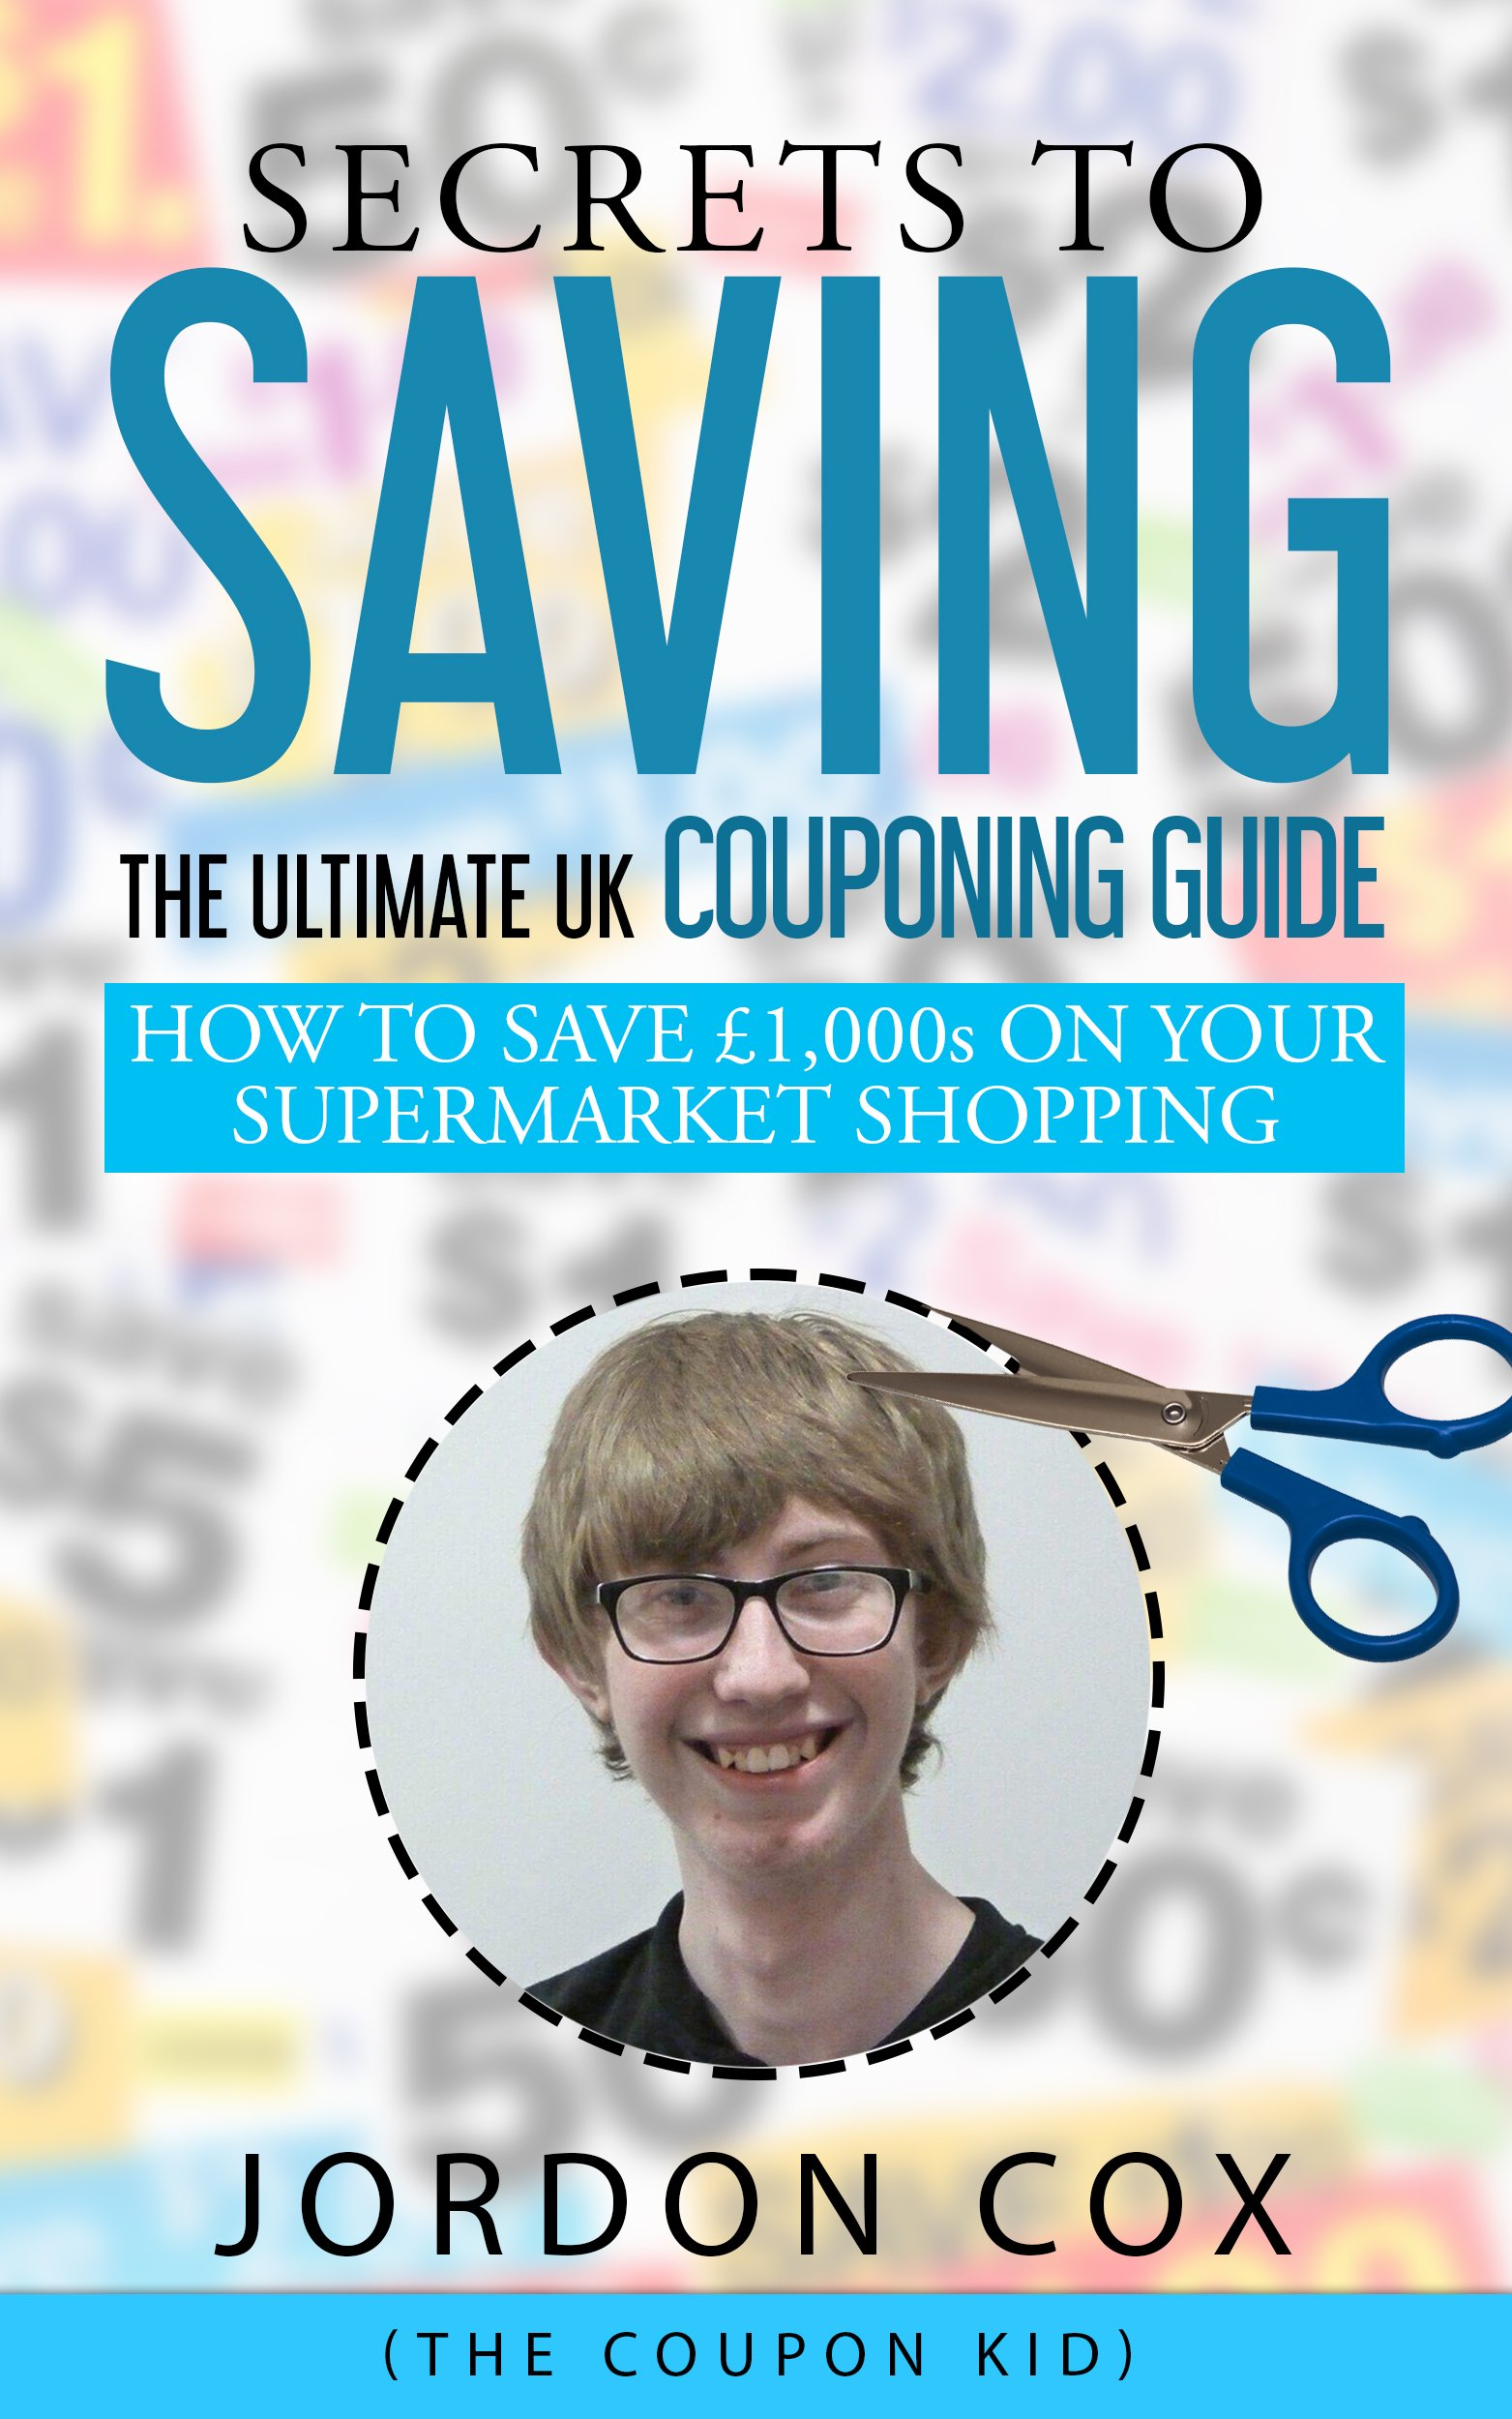 Image OfSecrets To Saving: The Ultimate UK Couponing Guide (English Edition)